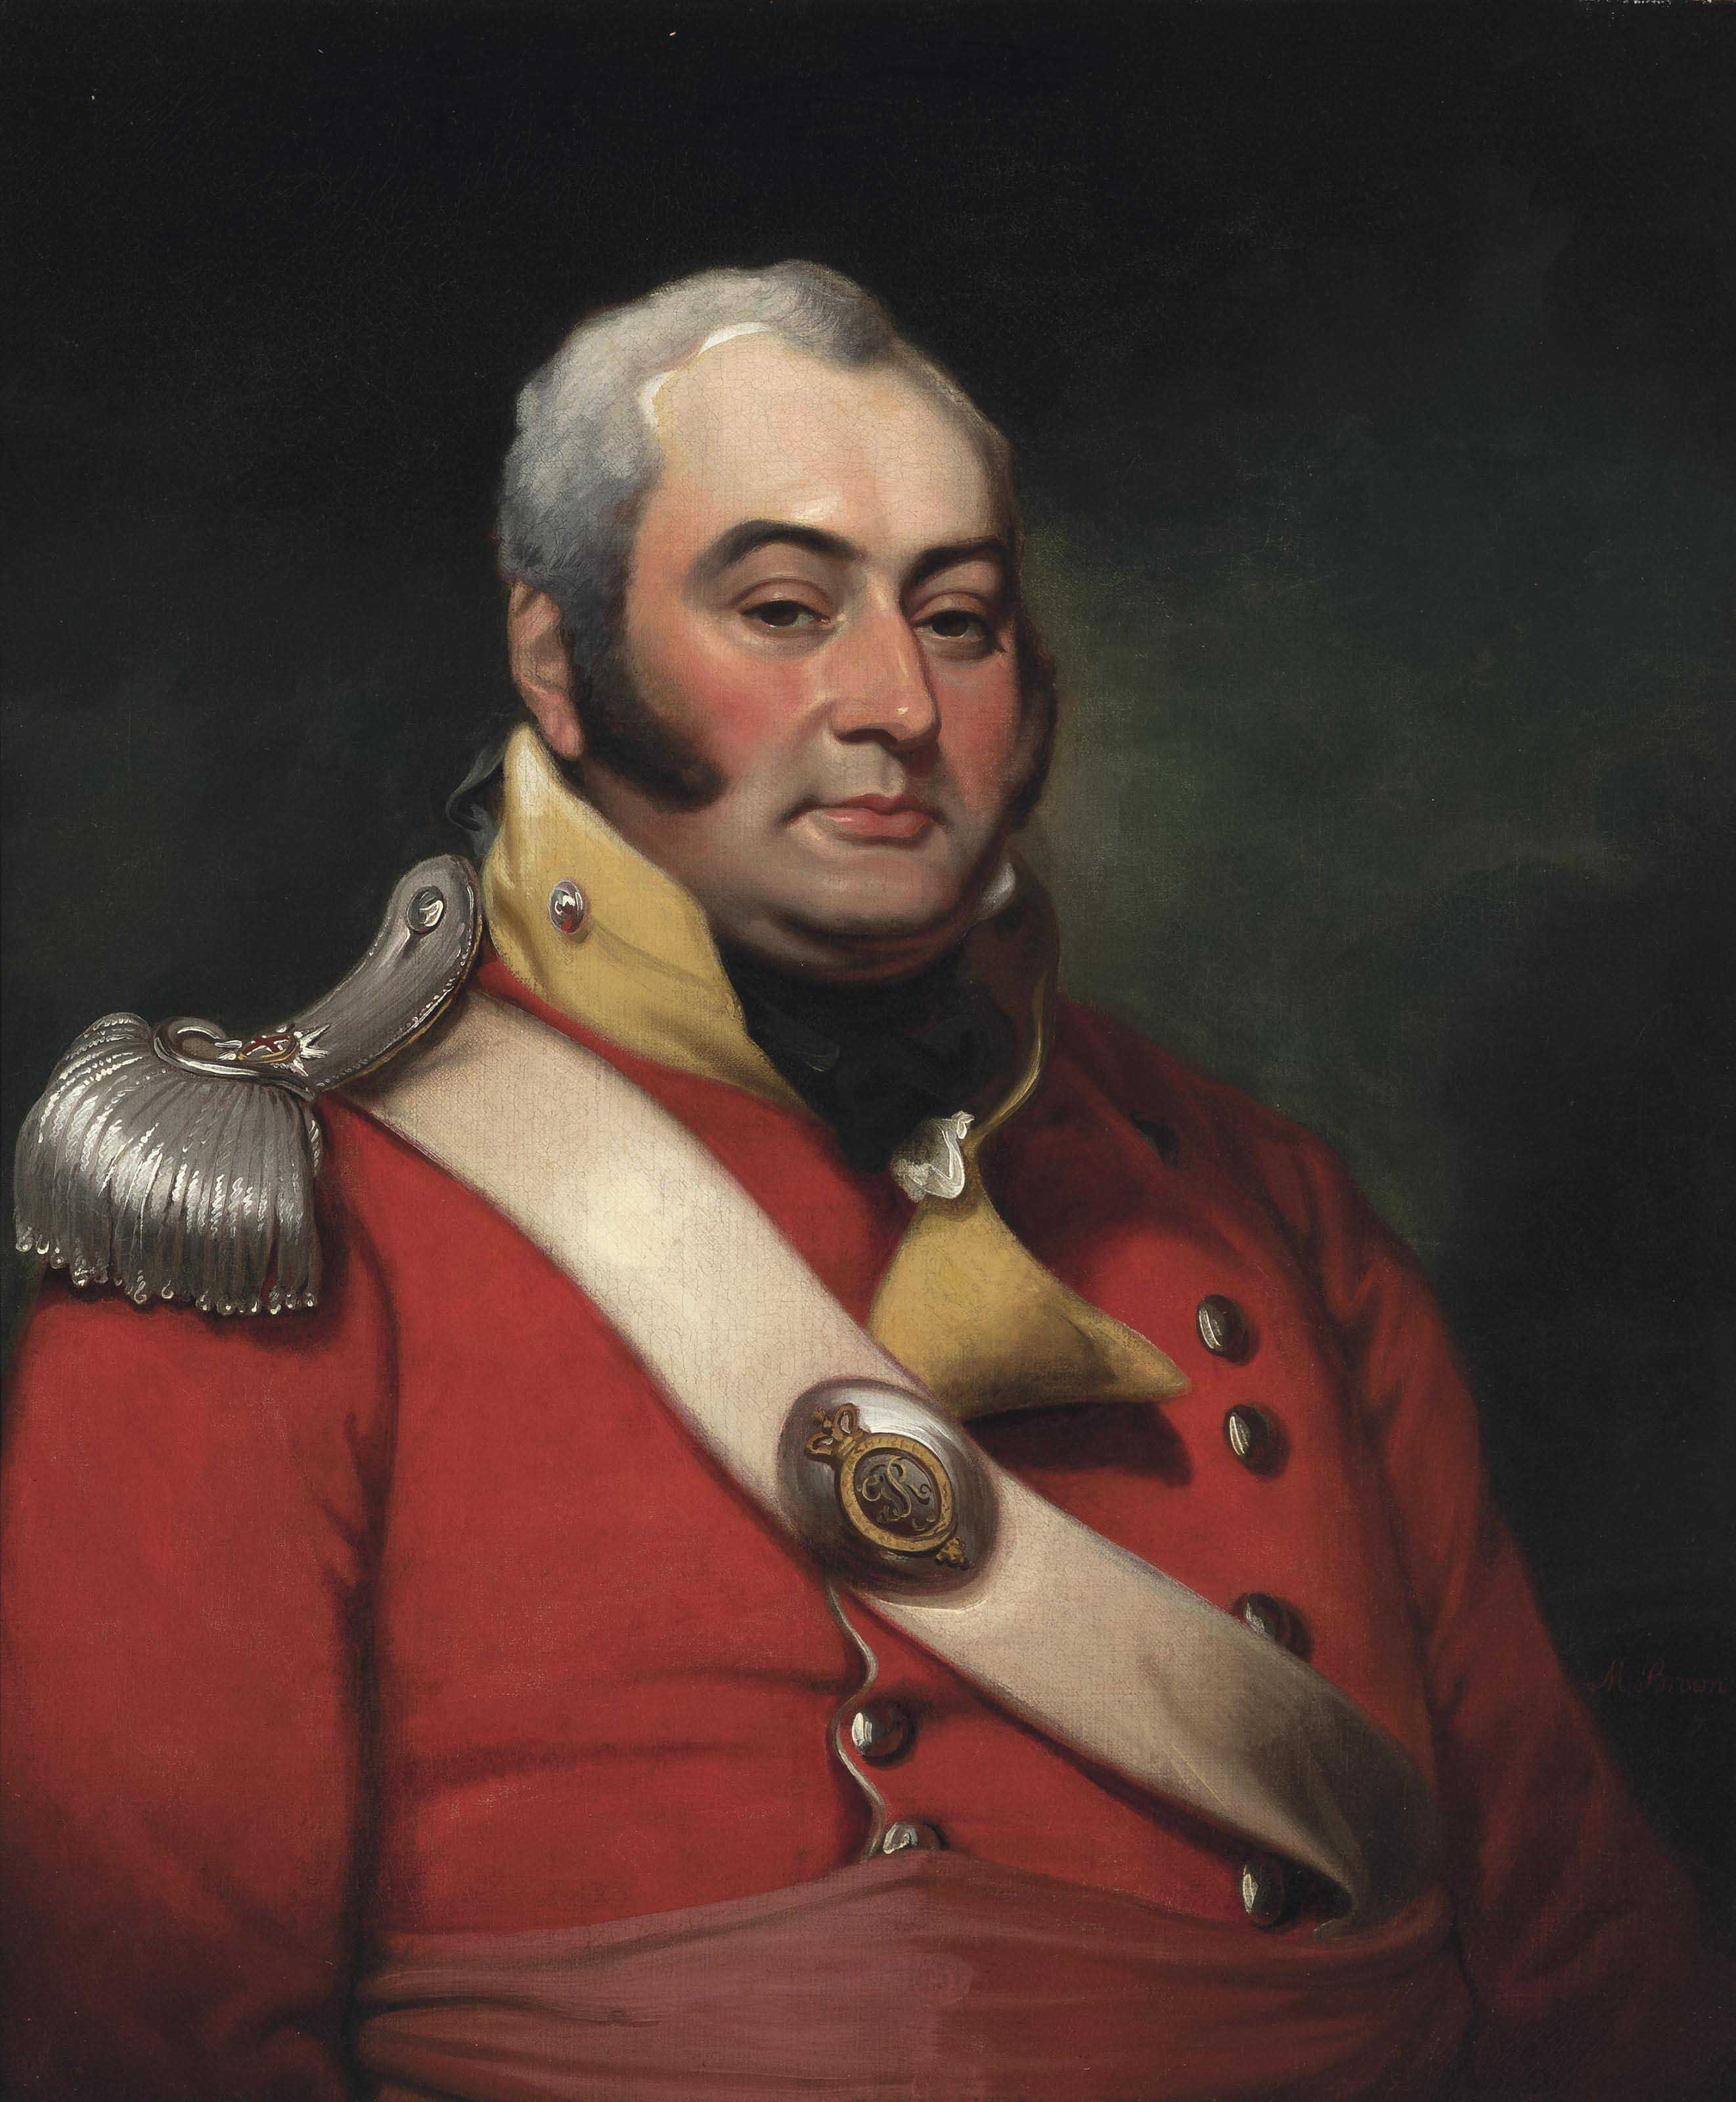 Portrait of George Fermor, 3rd Earl of Pomfret (1768-1830), half-length, wearing the uniform of a Captain in the Northamptonshire Militia